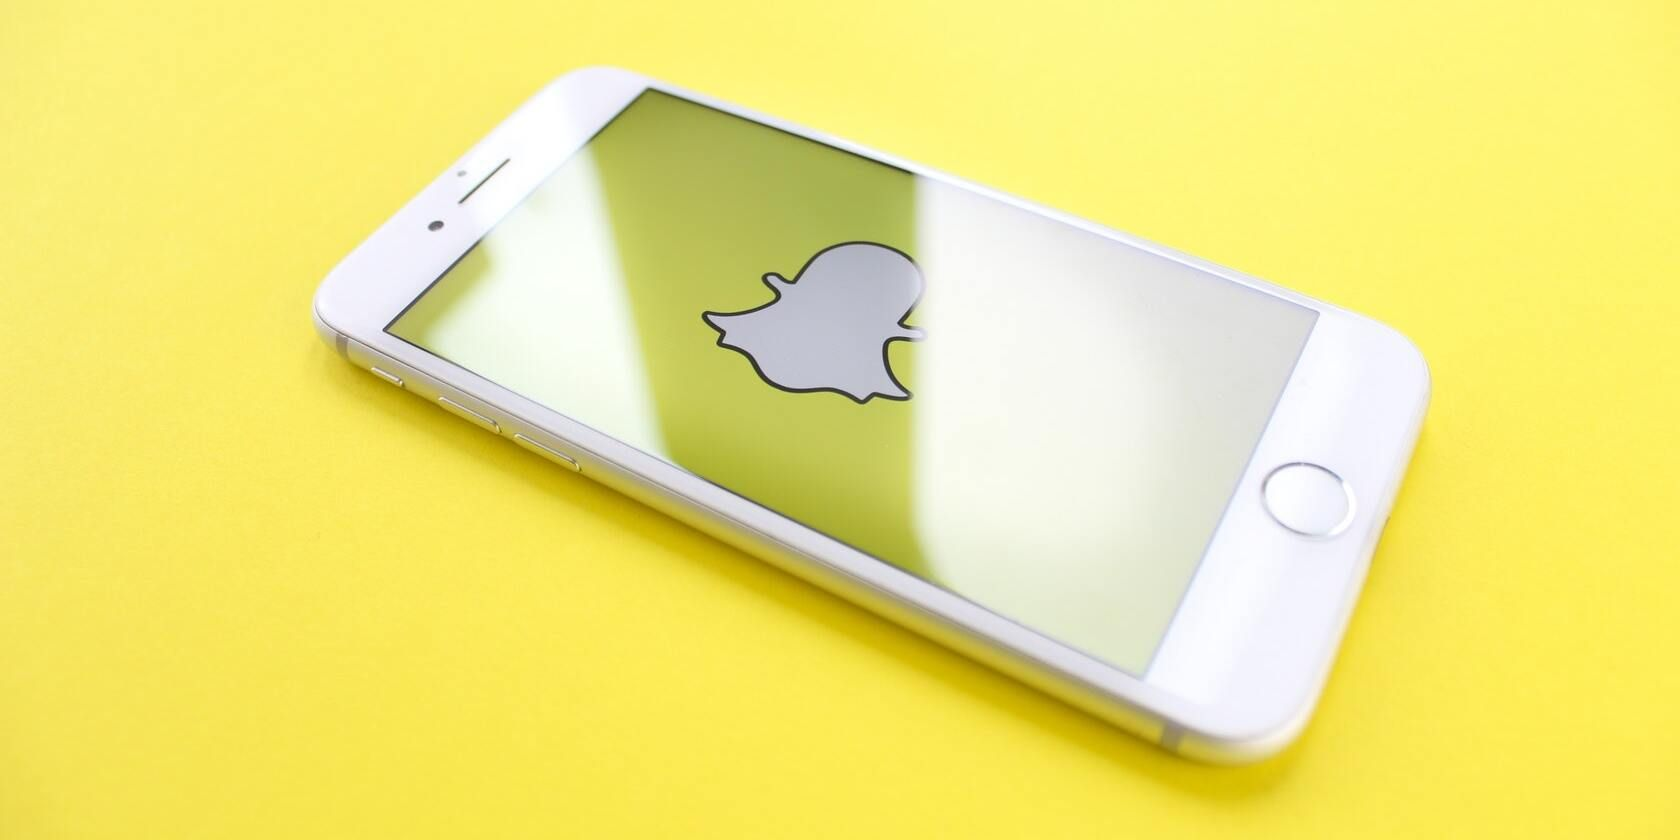 Snapchat Suspends Two Anonymous Messaging Apps Over Cyberbullying Claims